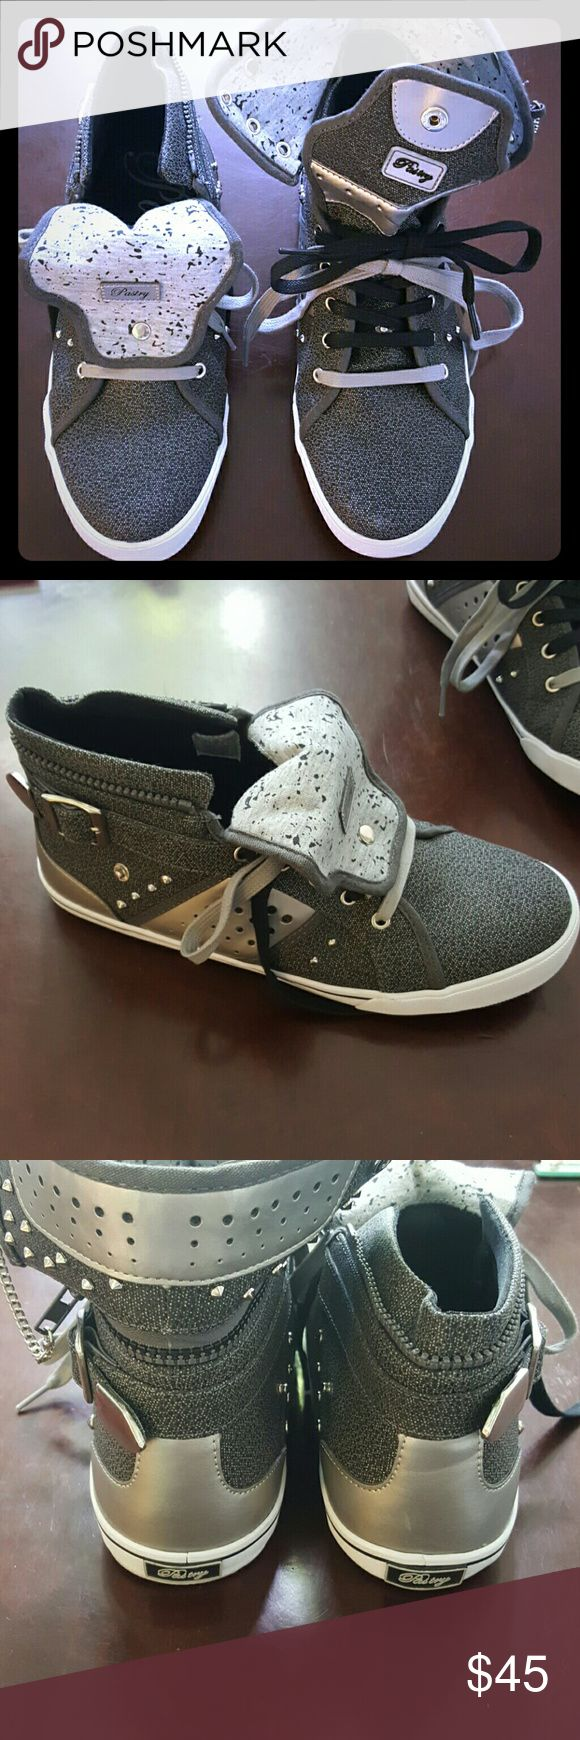 Pastry Shoes Ultra hip Super cute practically brand new pastry woman's shoes. You can mix it any way you like. With or without the hightop (zips and unzips to add or remove), with the tongue up or down... Snaps in place. Pastry   Shoes Sneakers